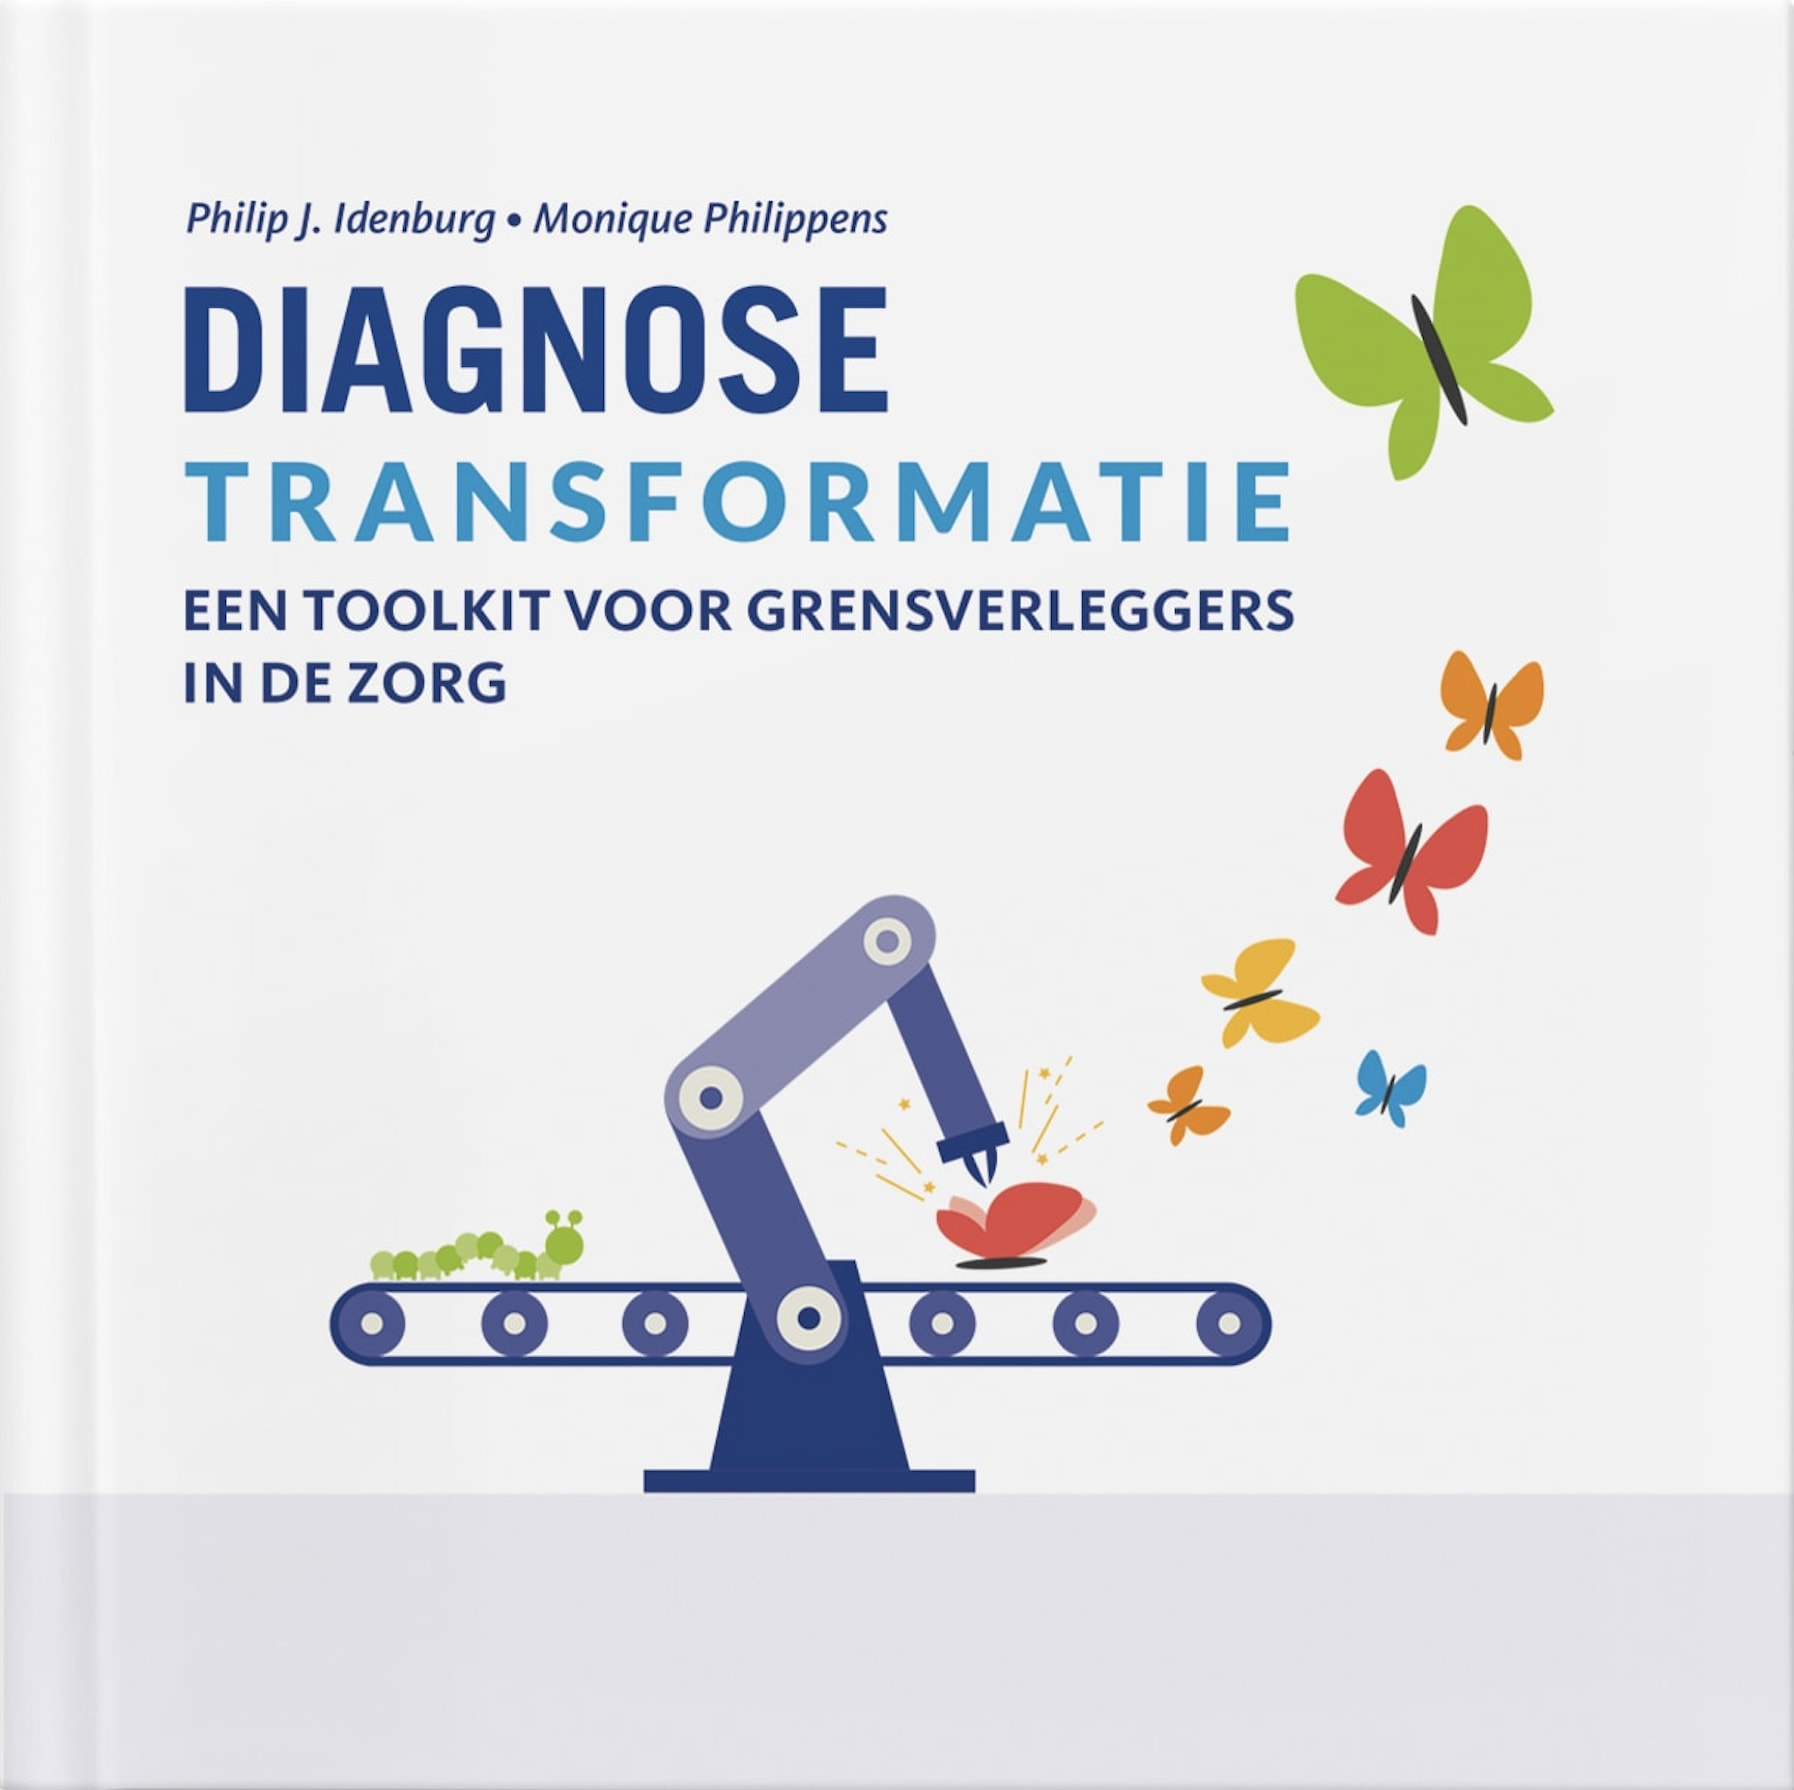 Mockup_boek_diagnose_transformatie_bebright